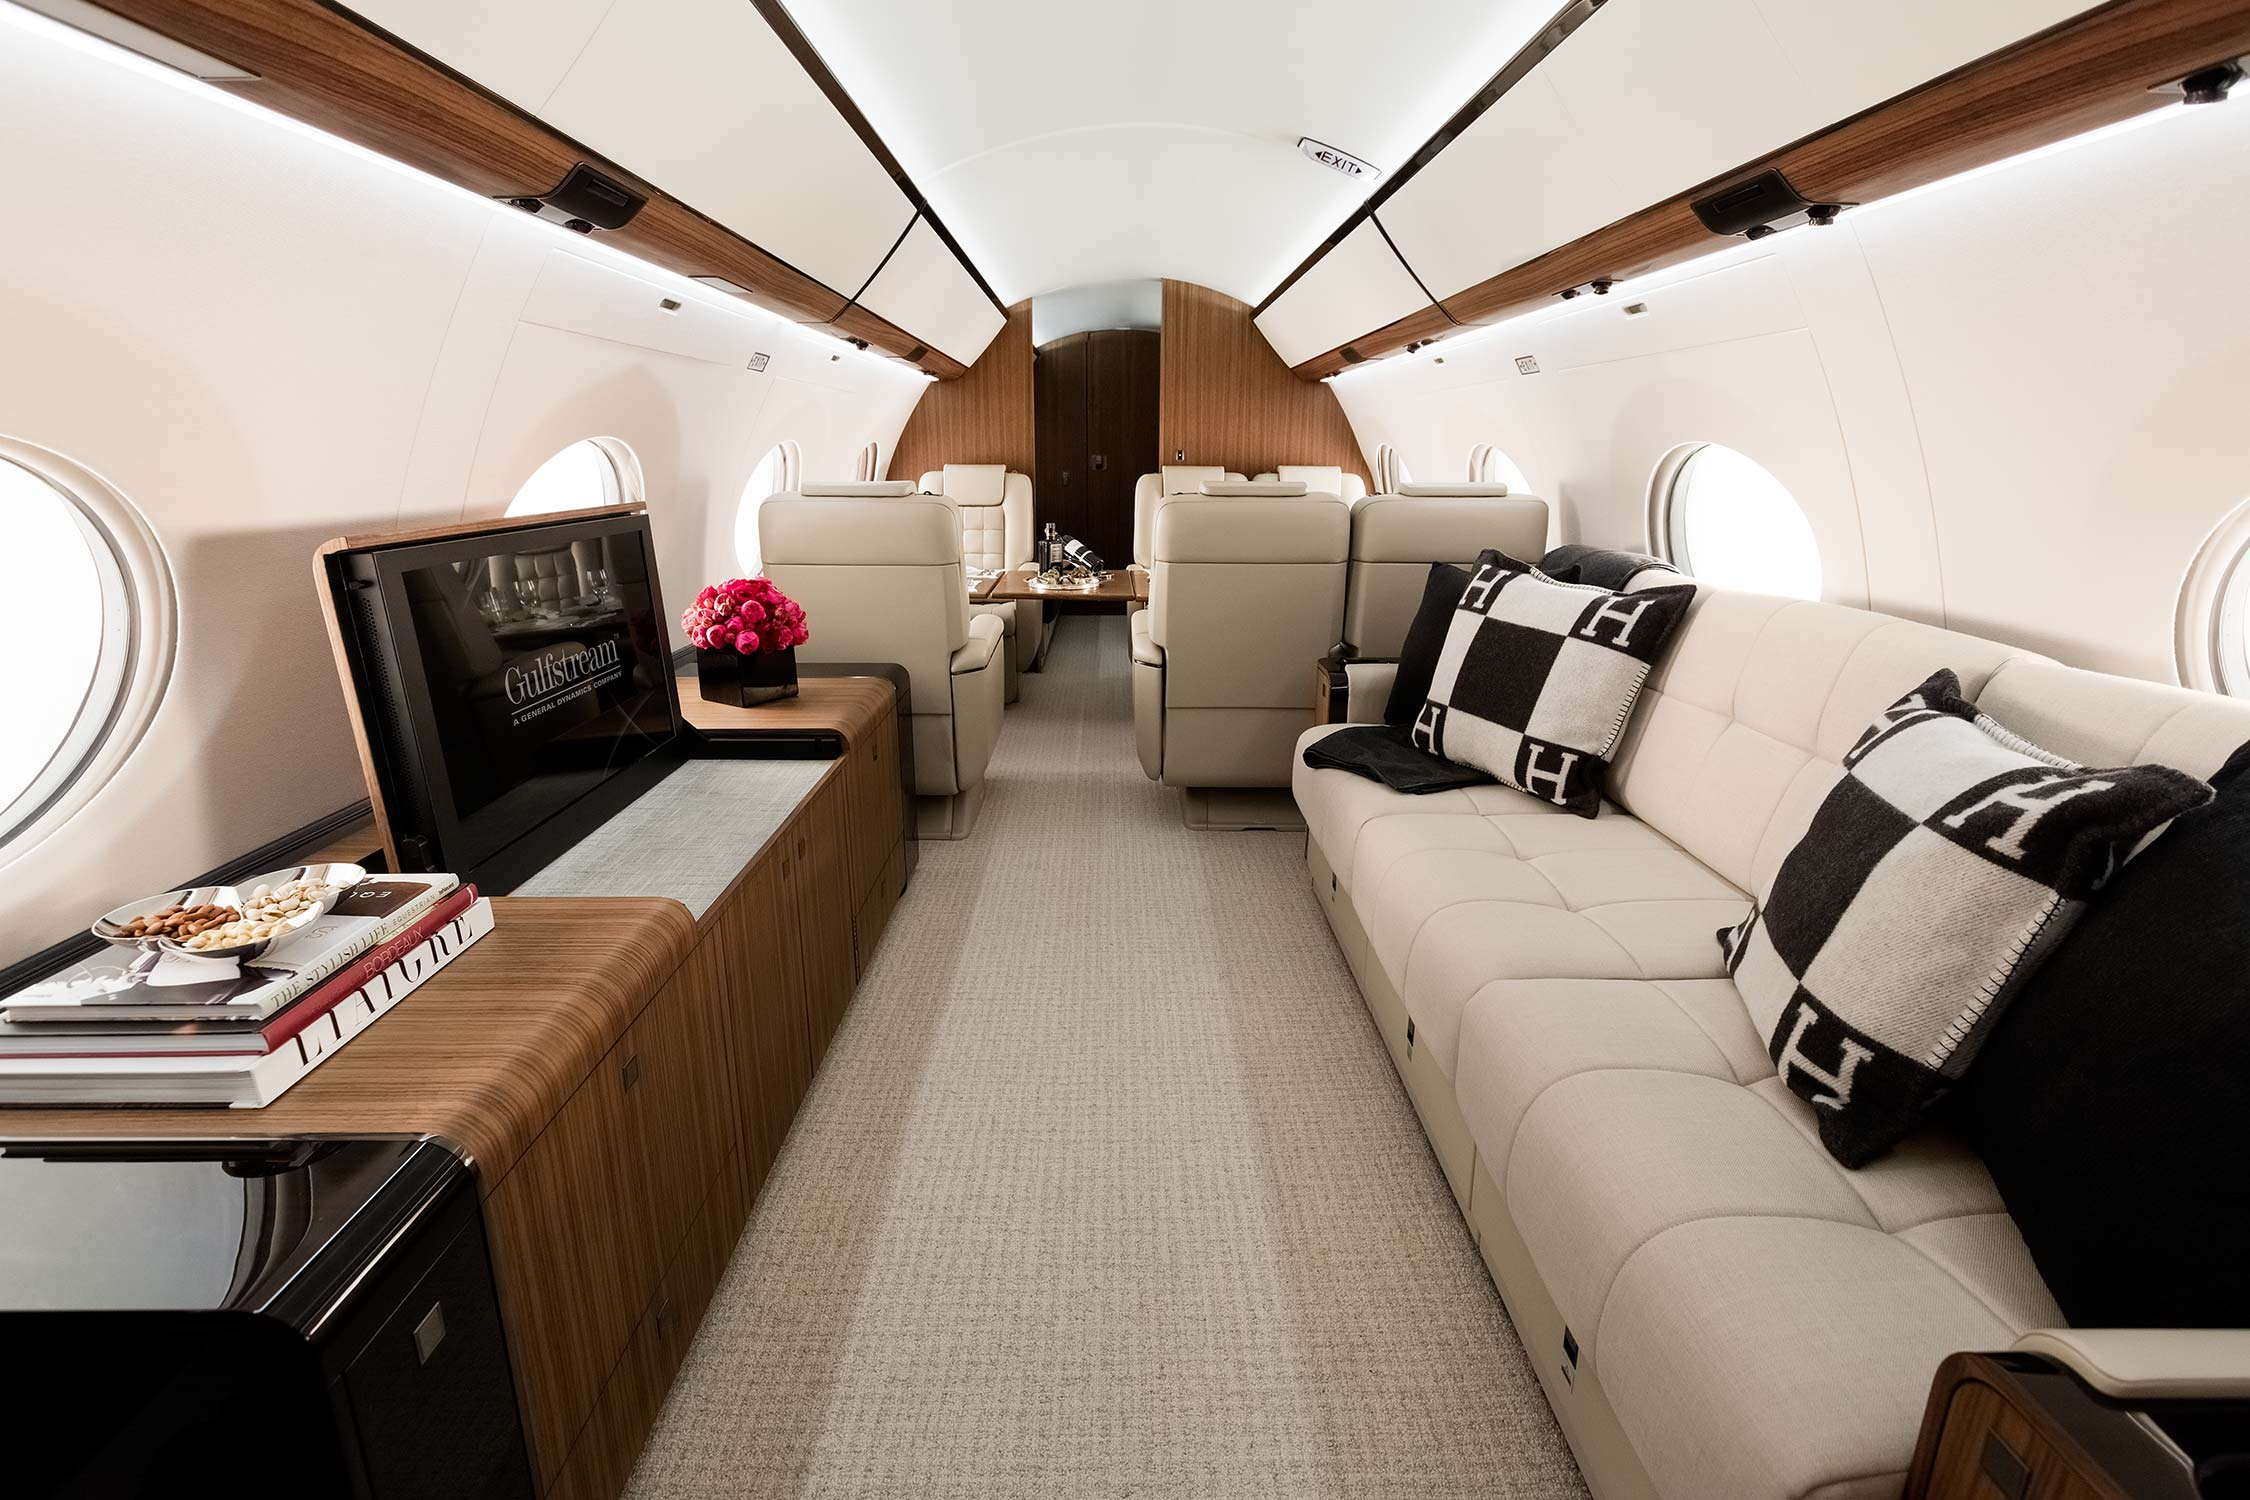 Interior of the Gulfstream G650